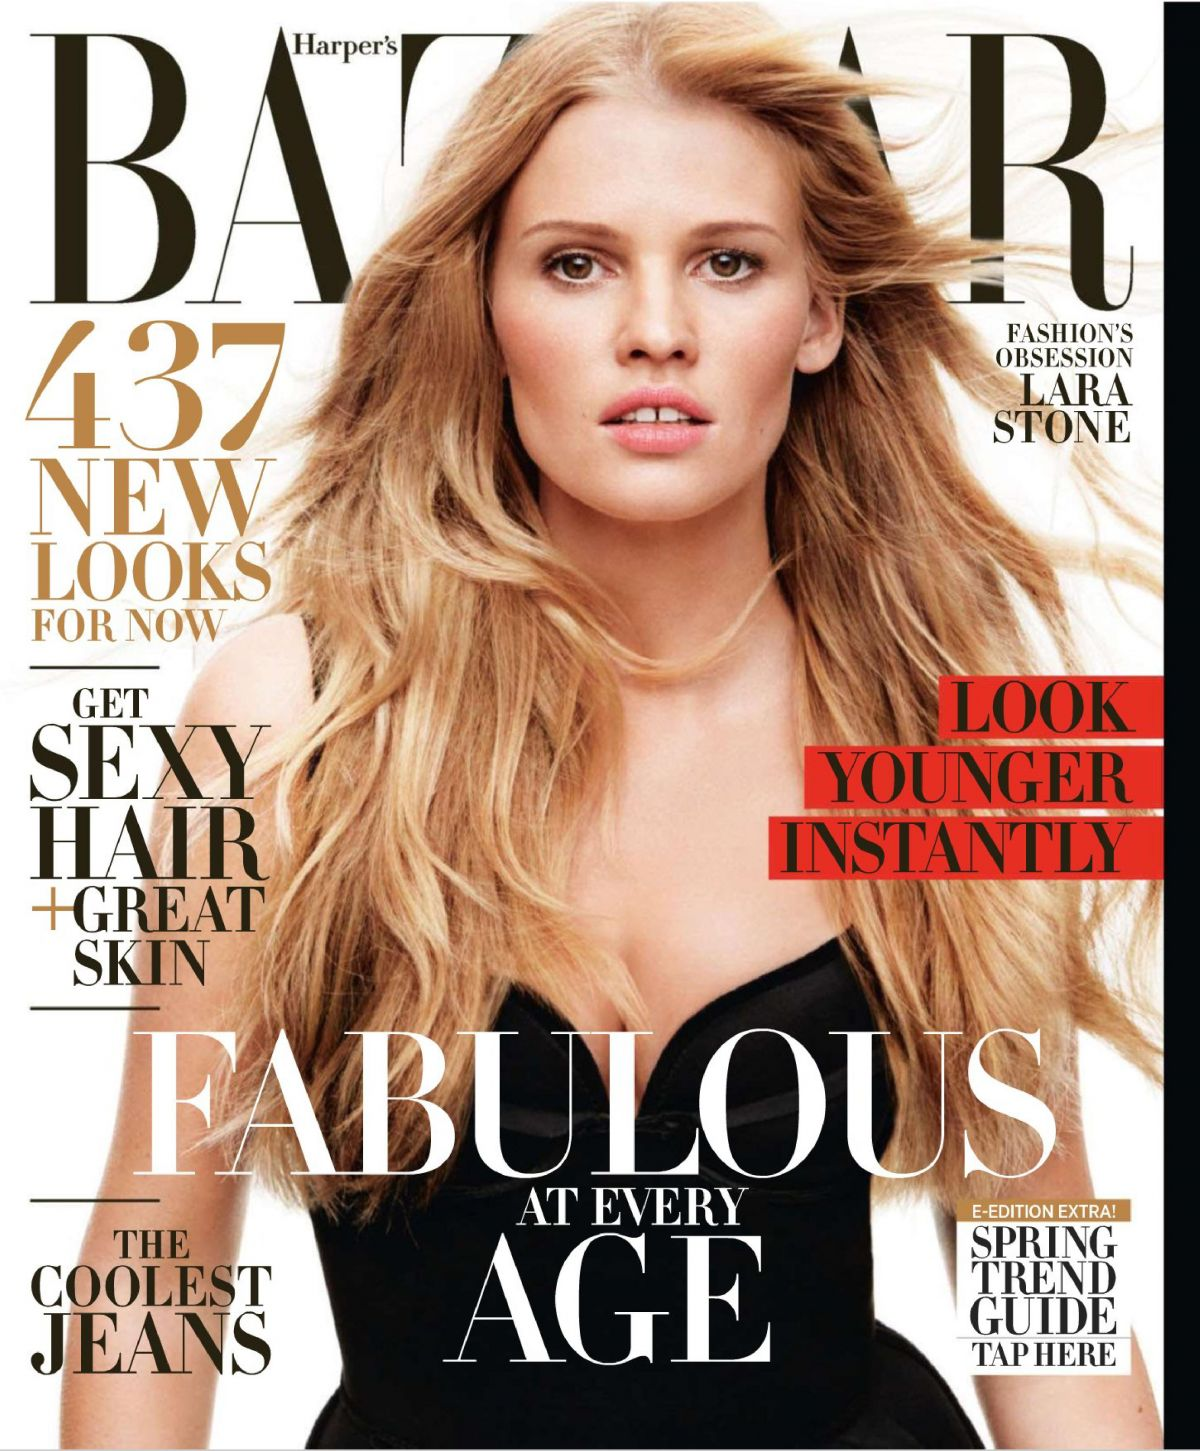 LARA STONE in Harper's Bazaar Magazine, April 2014 Issue - HawtCelebs - HawtC...